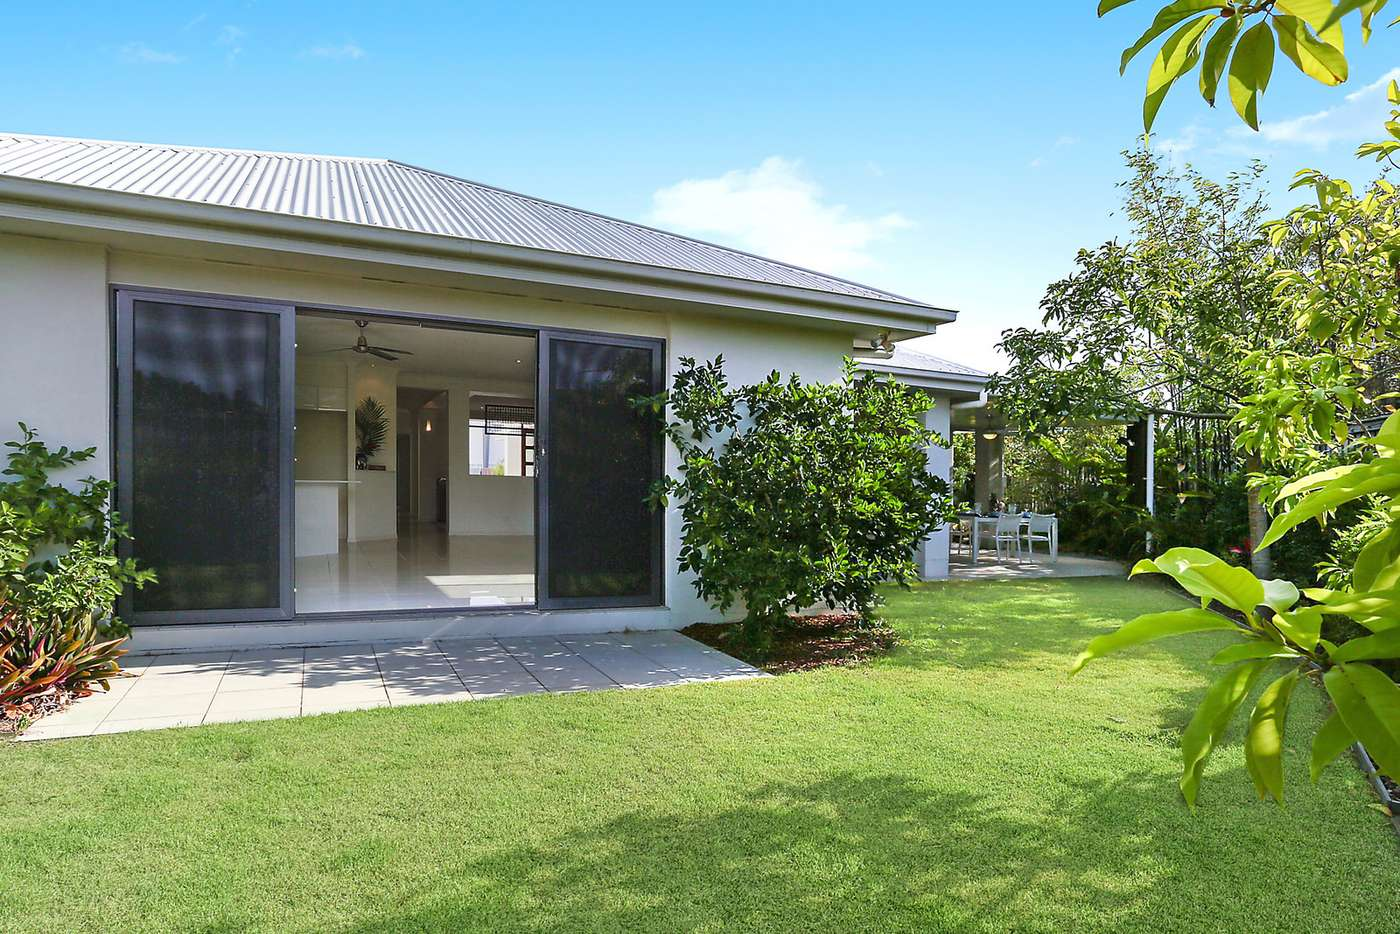 Main view of Homely house listing, 1 Bonaire Court, Parrearra QLD 4575